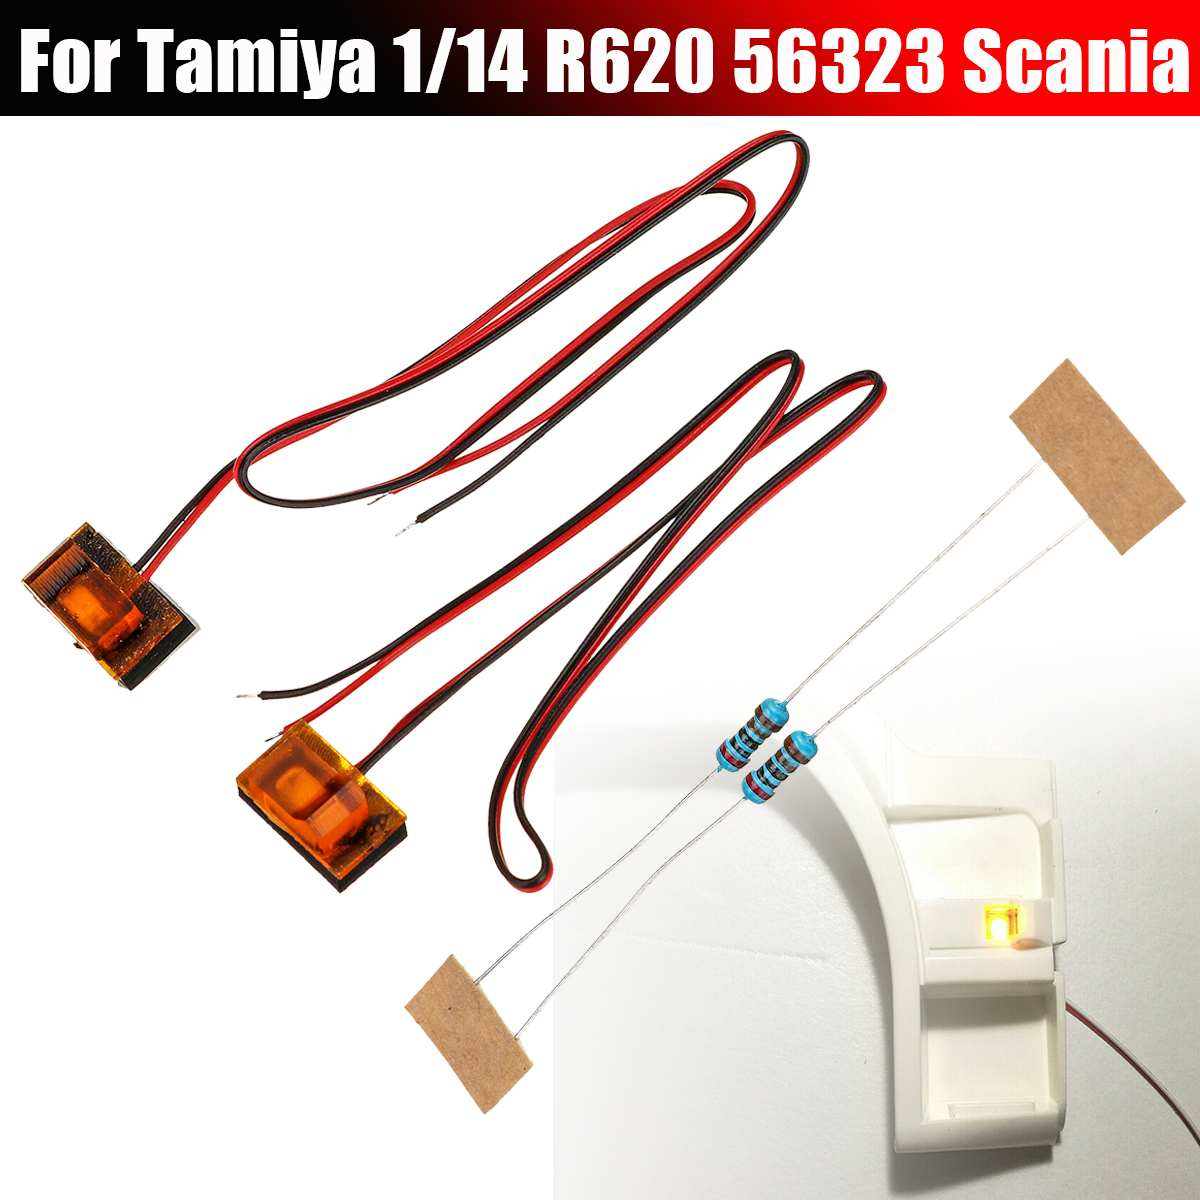 NEW 2PCS Replacement RC <font><b>Truck</b></font> Side Pedal Turn Signal Light For Tamiya 1/14 Scania R620 56323 RC <font><b>Truck</b></font> <font><b>Parts</b></font> RC Car Accessories image